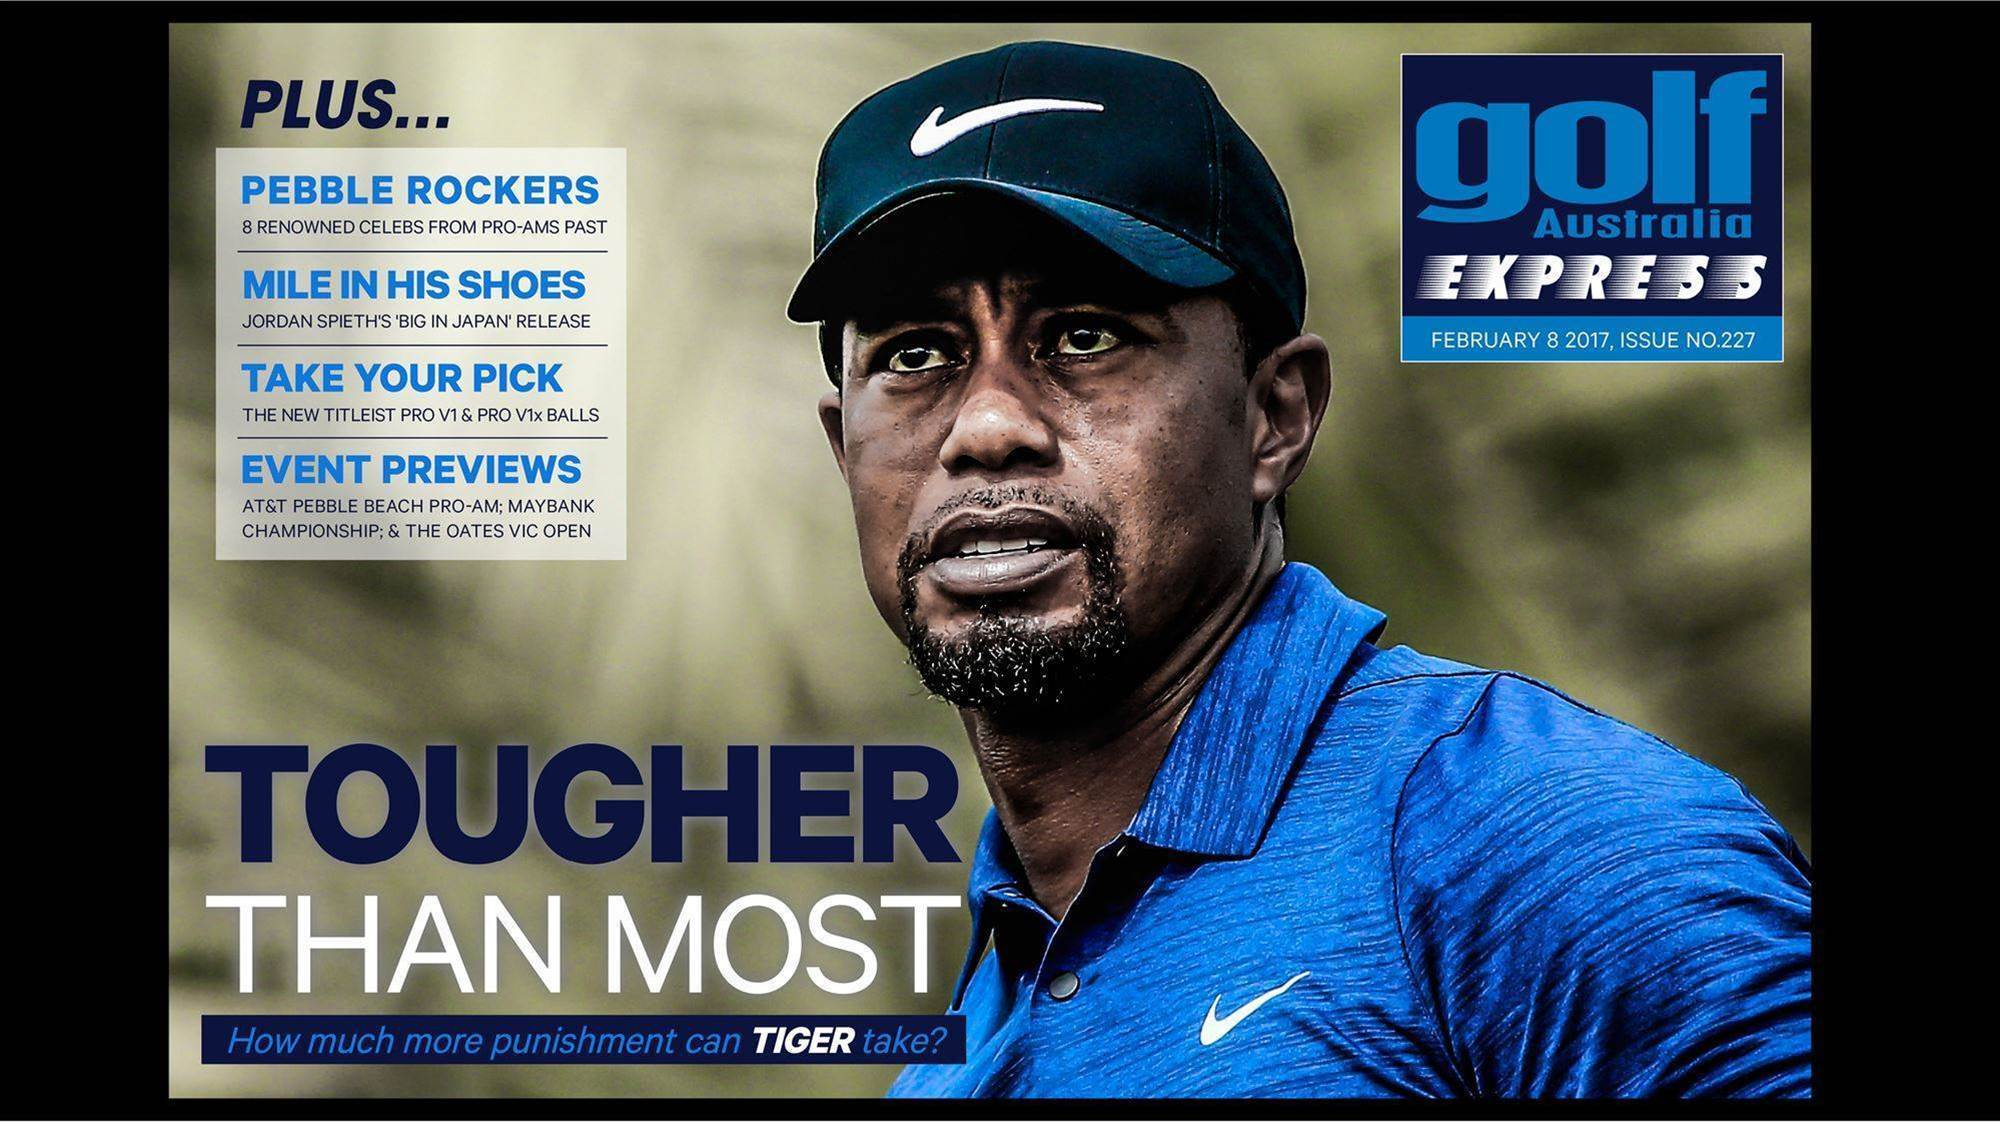 GA Express #227: Tiger's toughest battle lies ahead